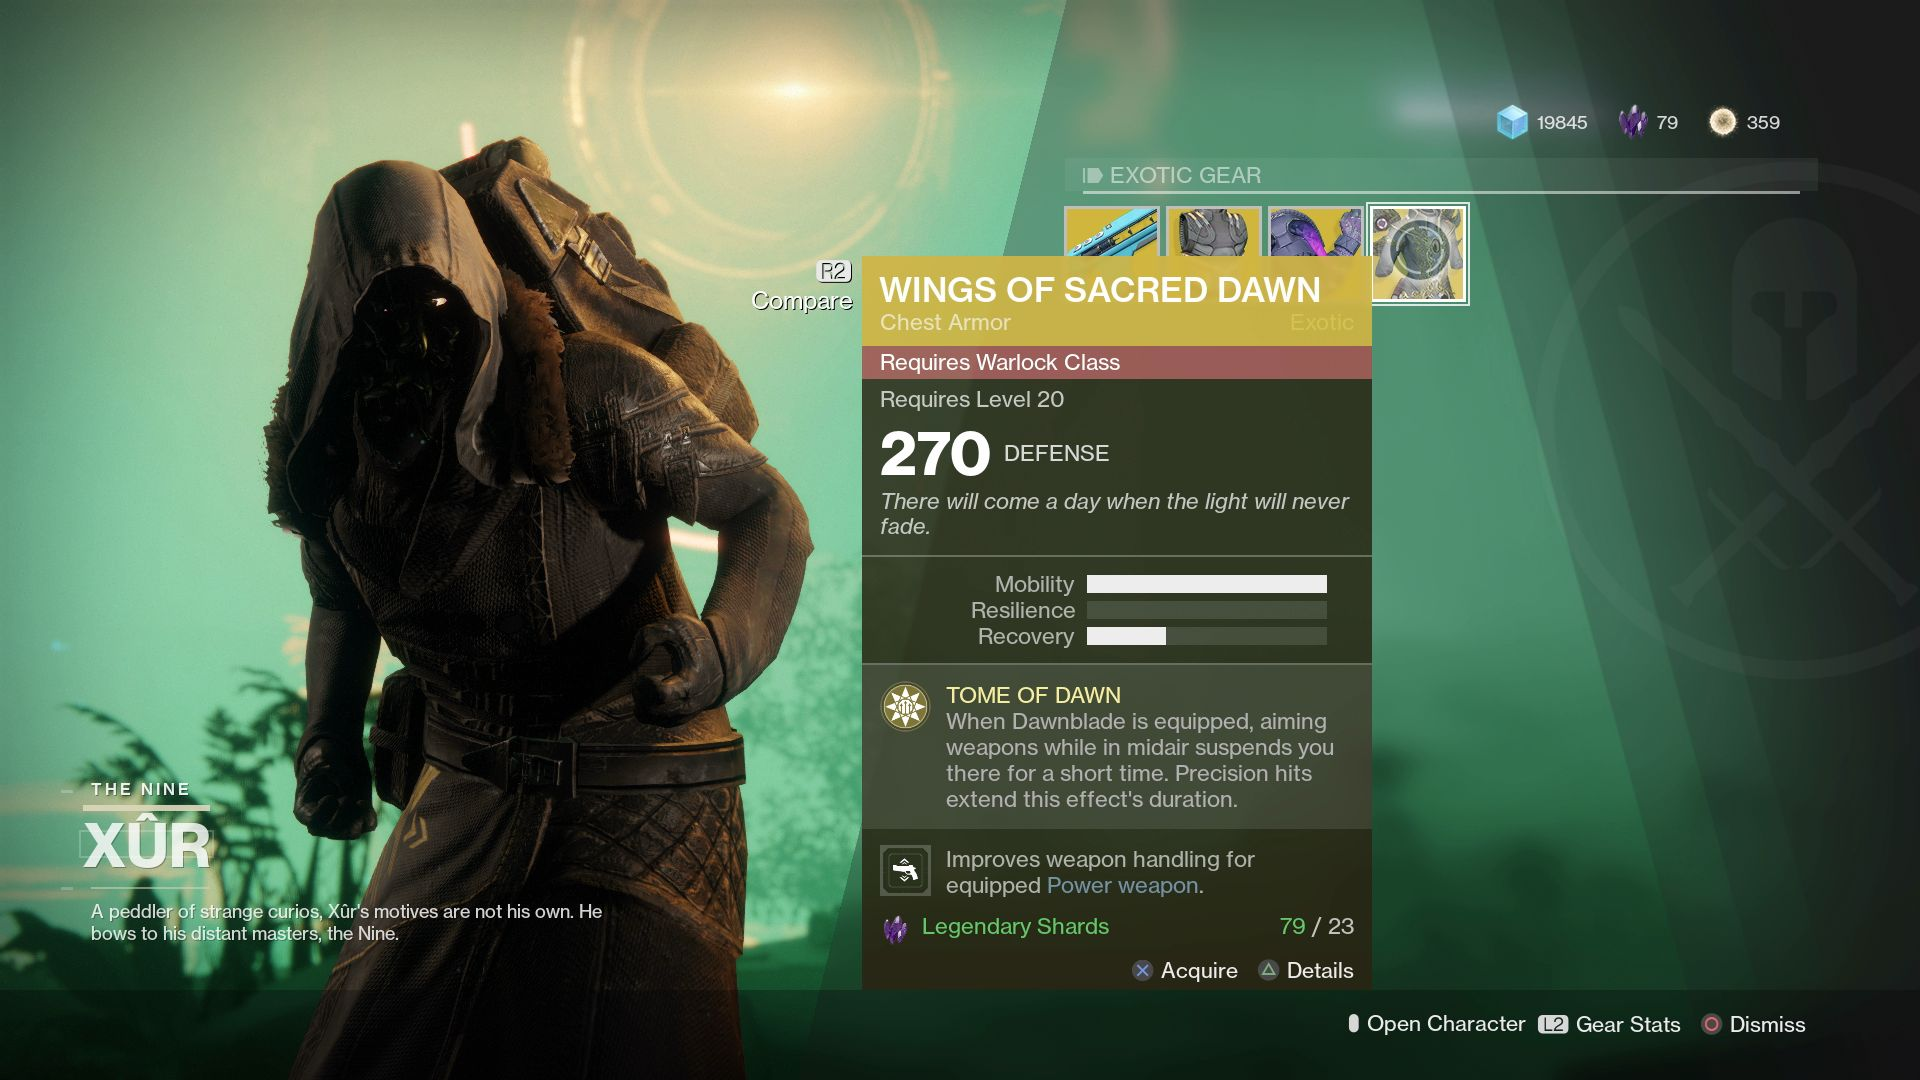 Xur Destiny 2 Xur Exotics Merciless Raiden Flux Doom Fang